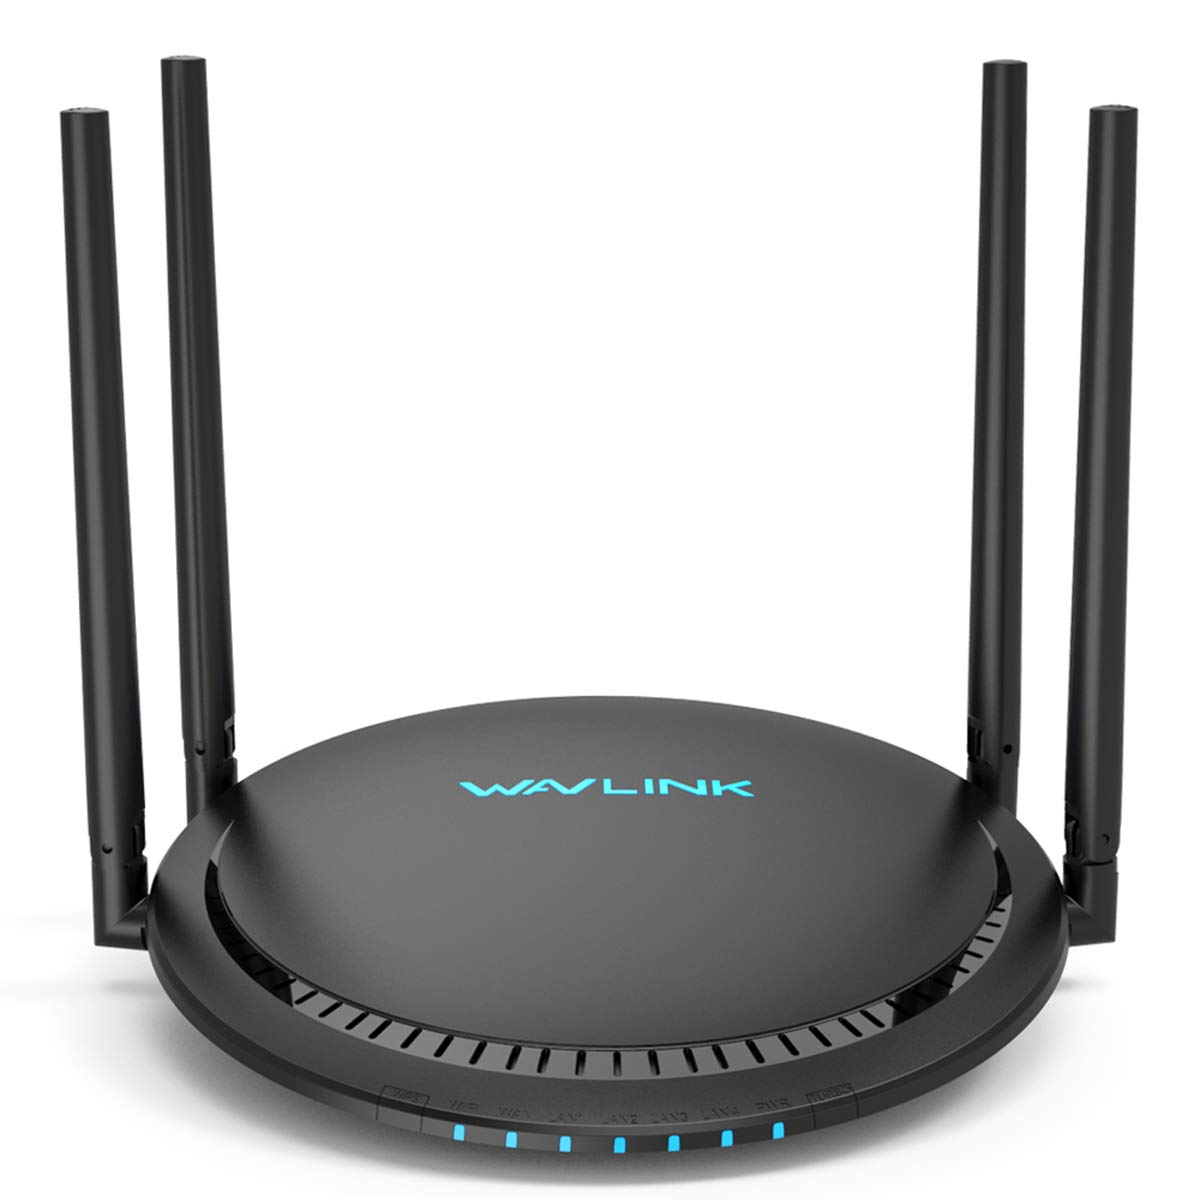 1200Mbps Smart WiFi Router, WAVLINK AC1200 Dual-Band Gigabit Ethernet  Router WiFi Wireless 5Ghz + 2 4Ghz Gaming WiFi Router High Speed Wireless  WiFi